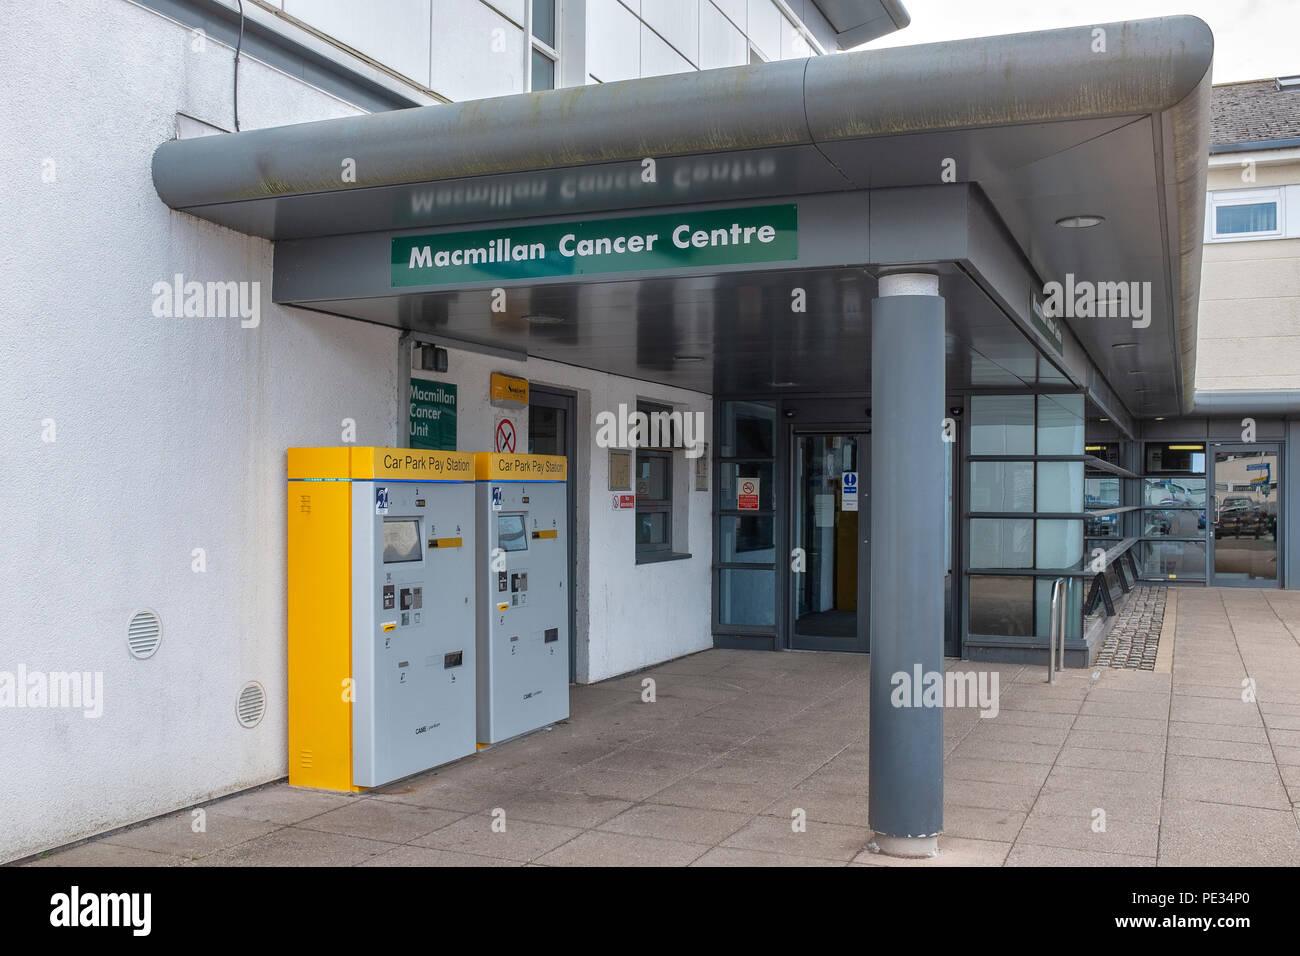 Macmillan Cancer Centre at Leighton Hospital in Crewe Cheshire UK - Stock Image